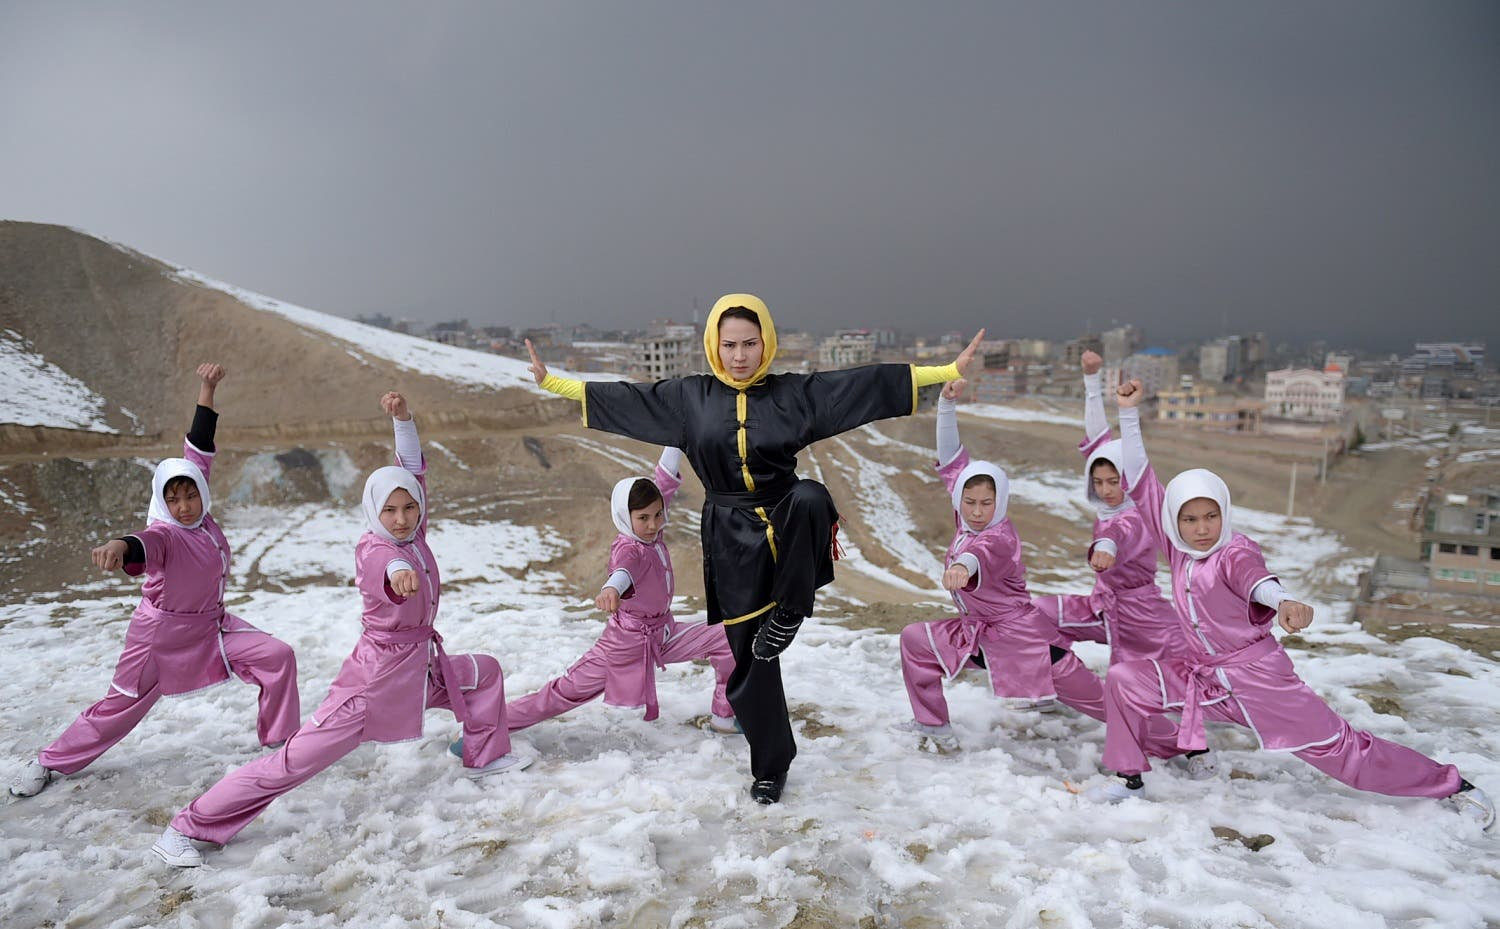 In this photograph taken on January 29, 2017, Afghan members of a wushu martial arts group pose for a photograph at the Shahrak Haji Nabi hilltop overlooking Kabul. (AFP)